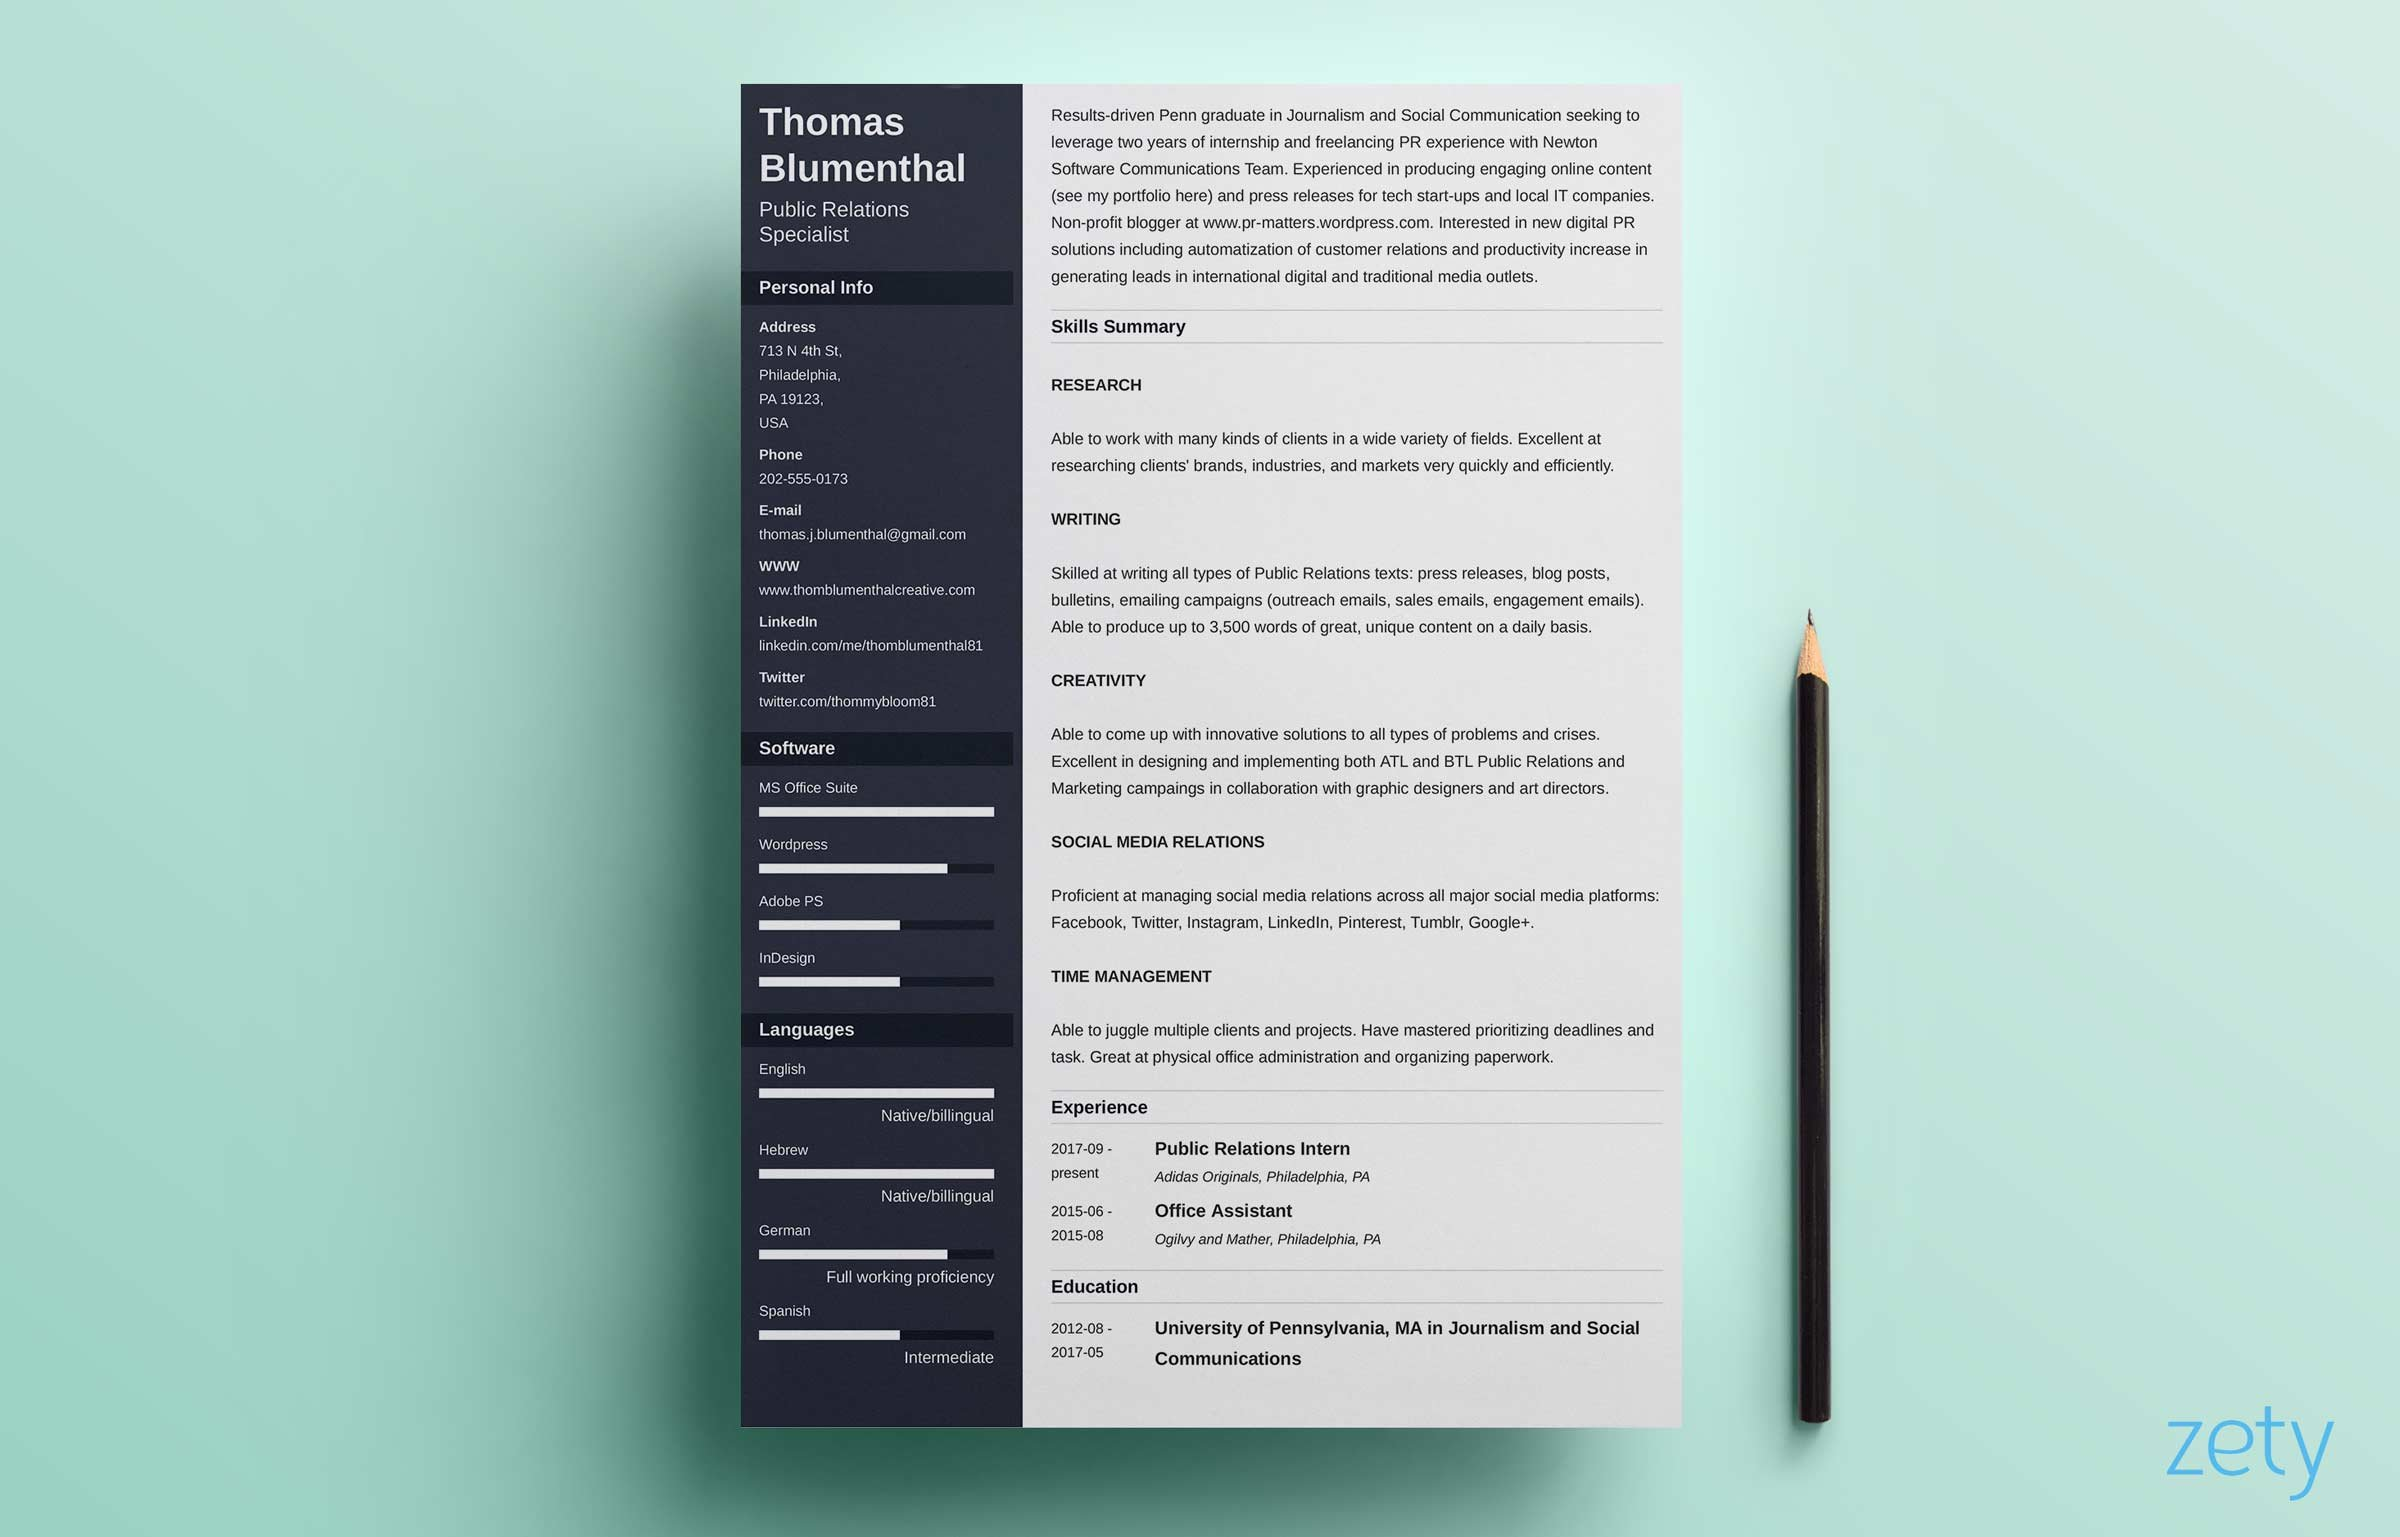 functional resume examples skills based templates best sample paraprofessional summary Resume Best Functional Resume Templates